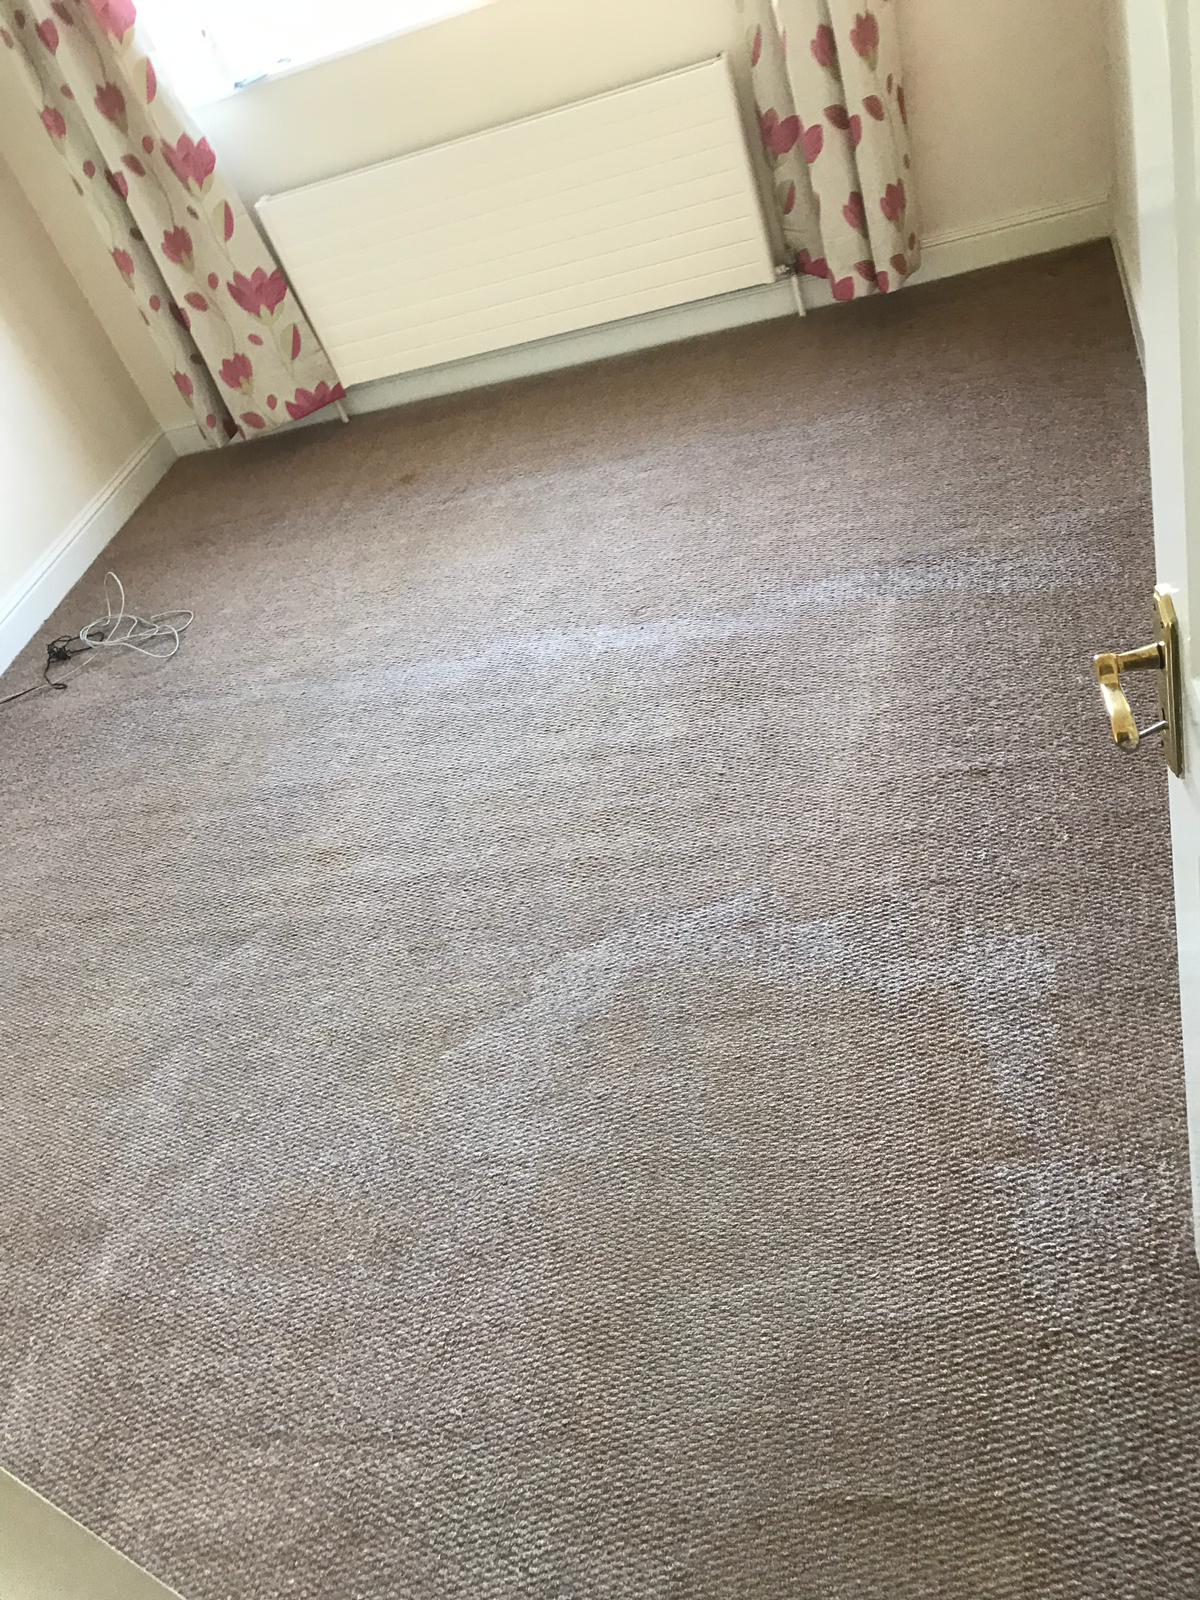 Carpet Cleaning Dublin 13 Organic Carpet Cleaning Company